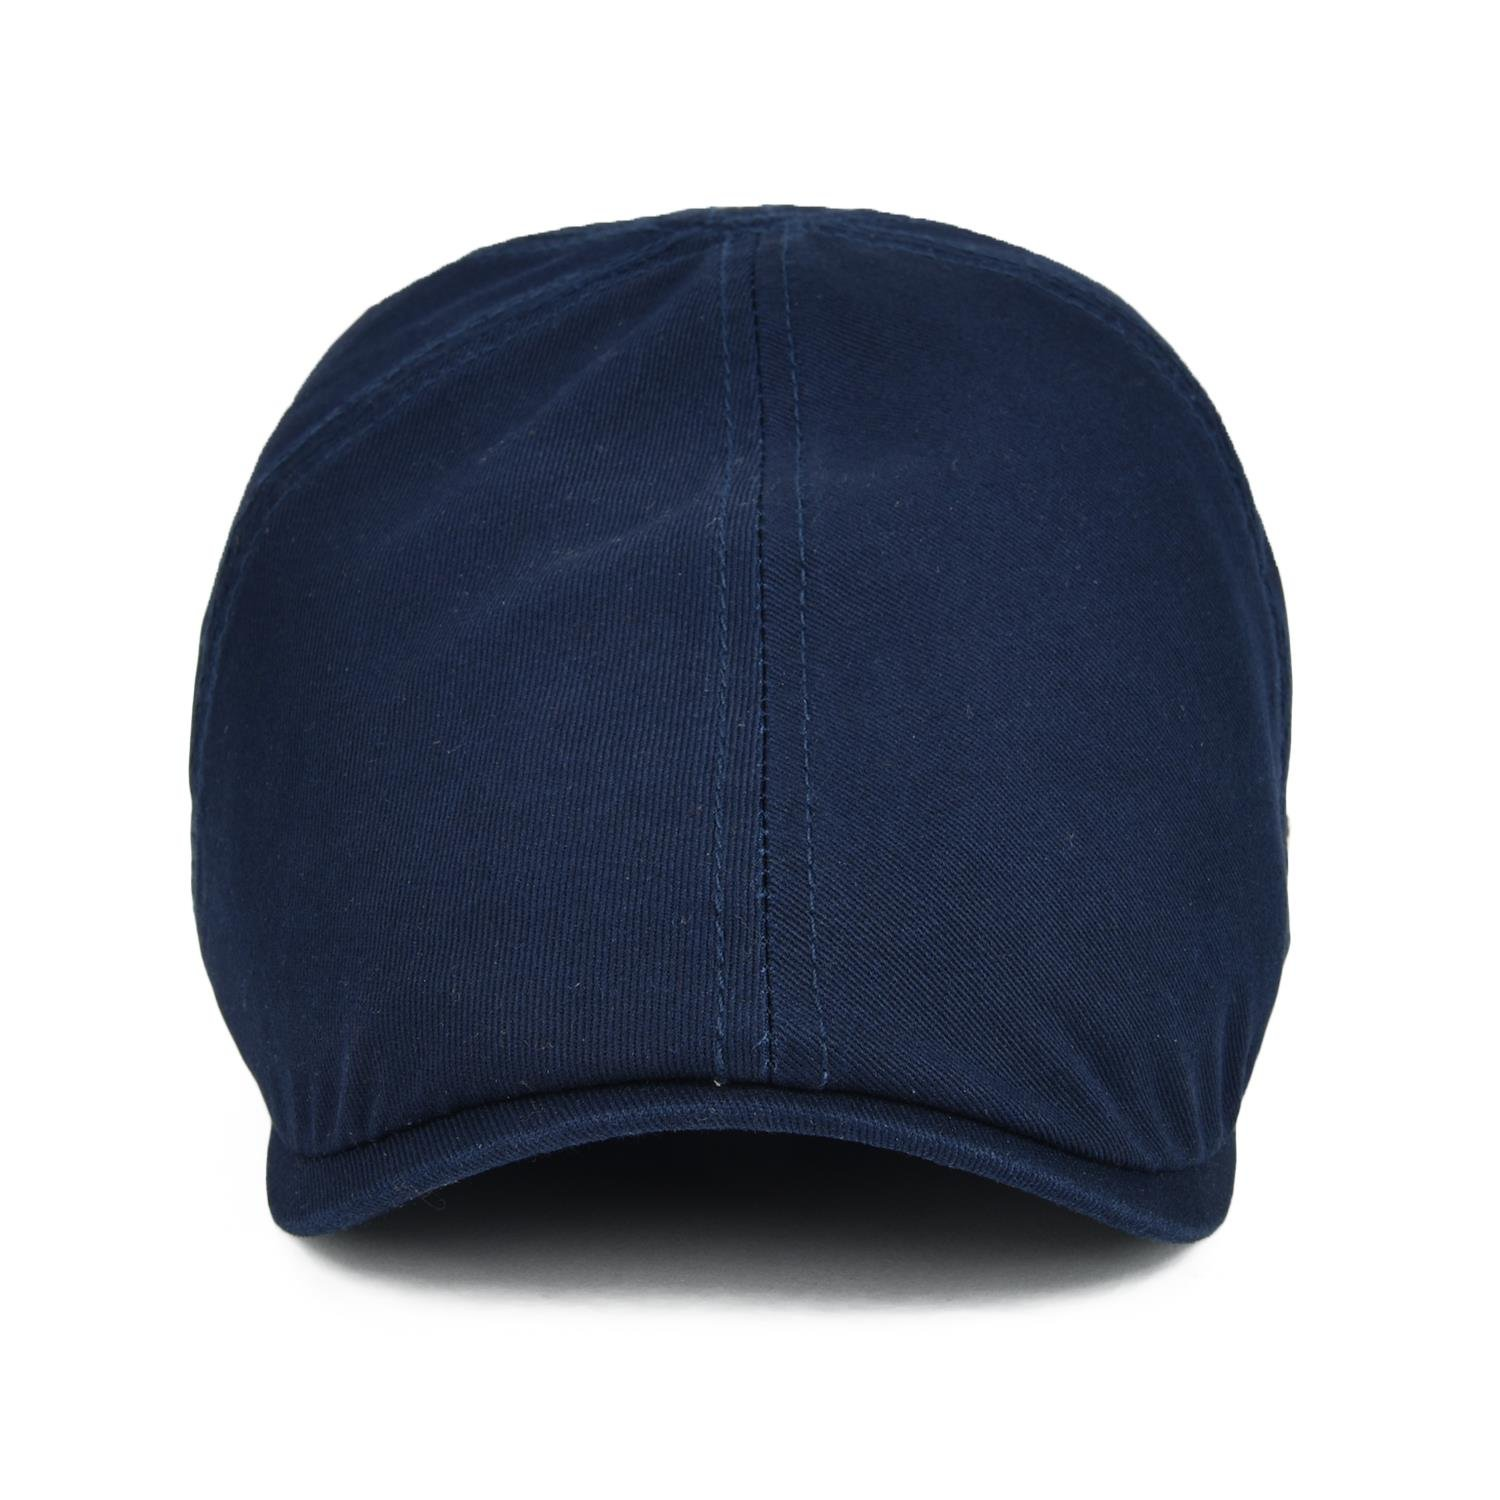 Product description. VOBOOM 100 % Cotton Solid Color Gatsby Newsboy Cabbie  Hat Hunting Flat Cap ... bfce6db379c0